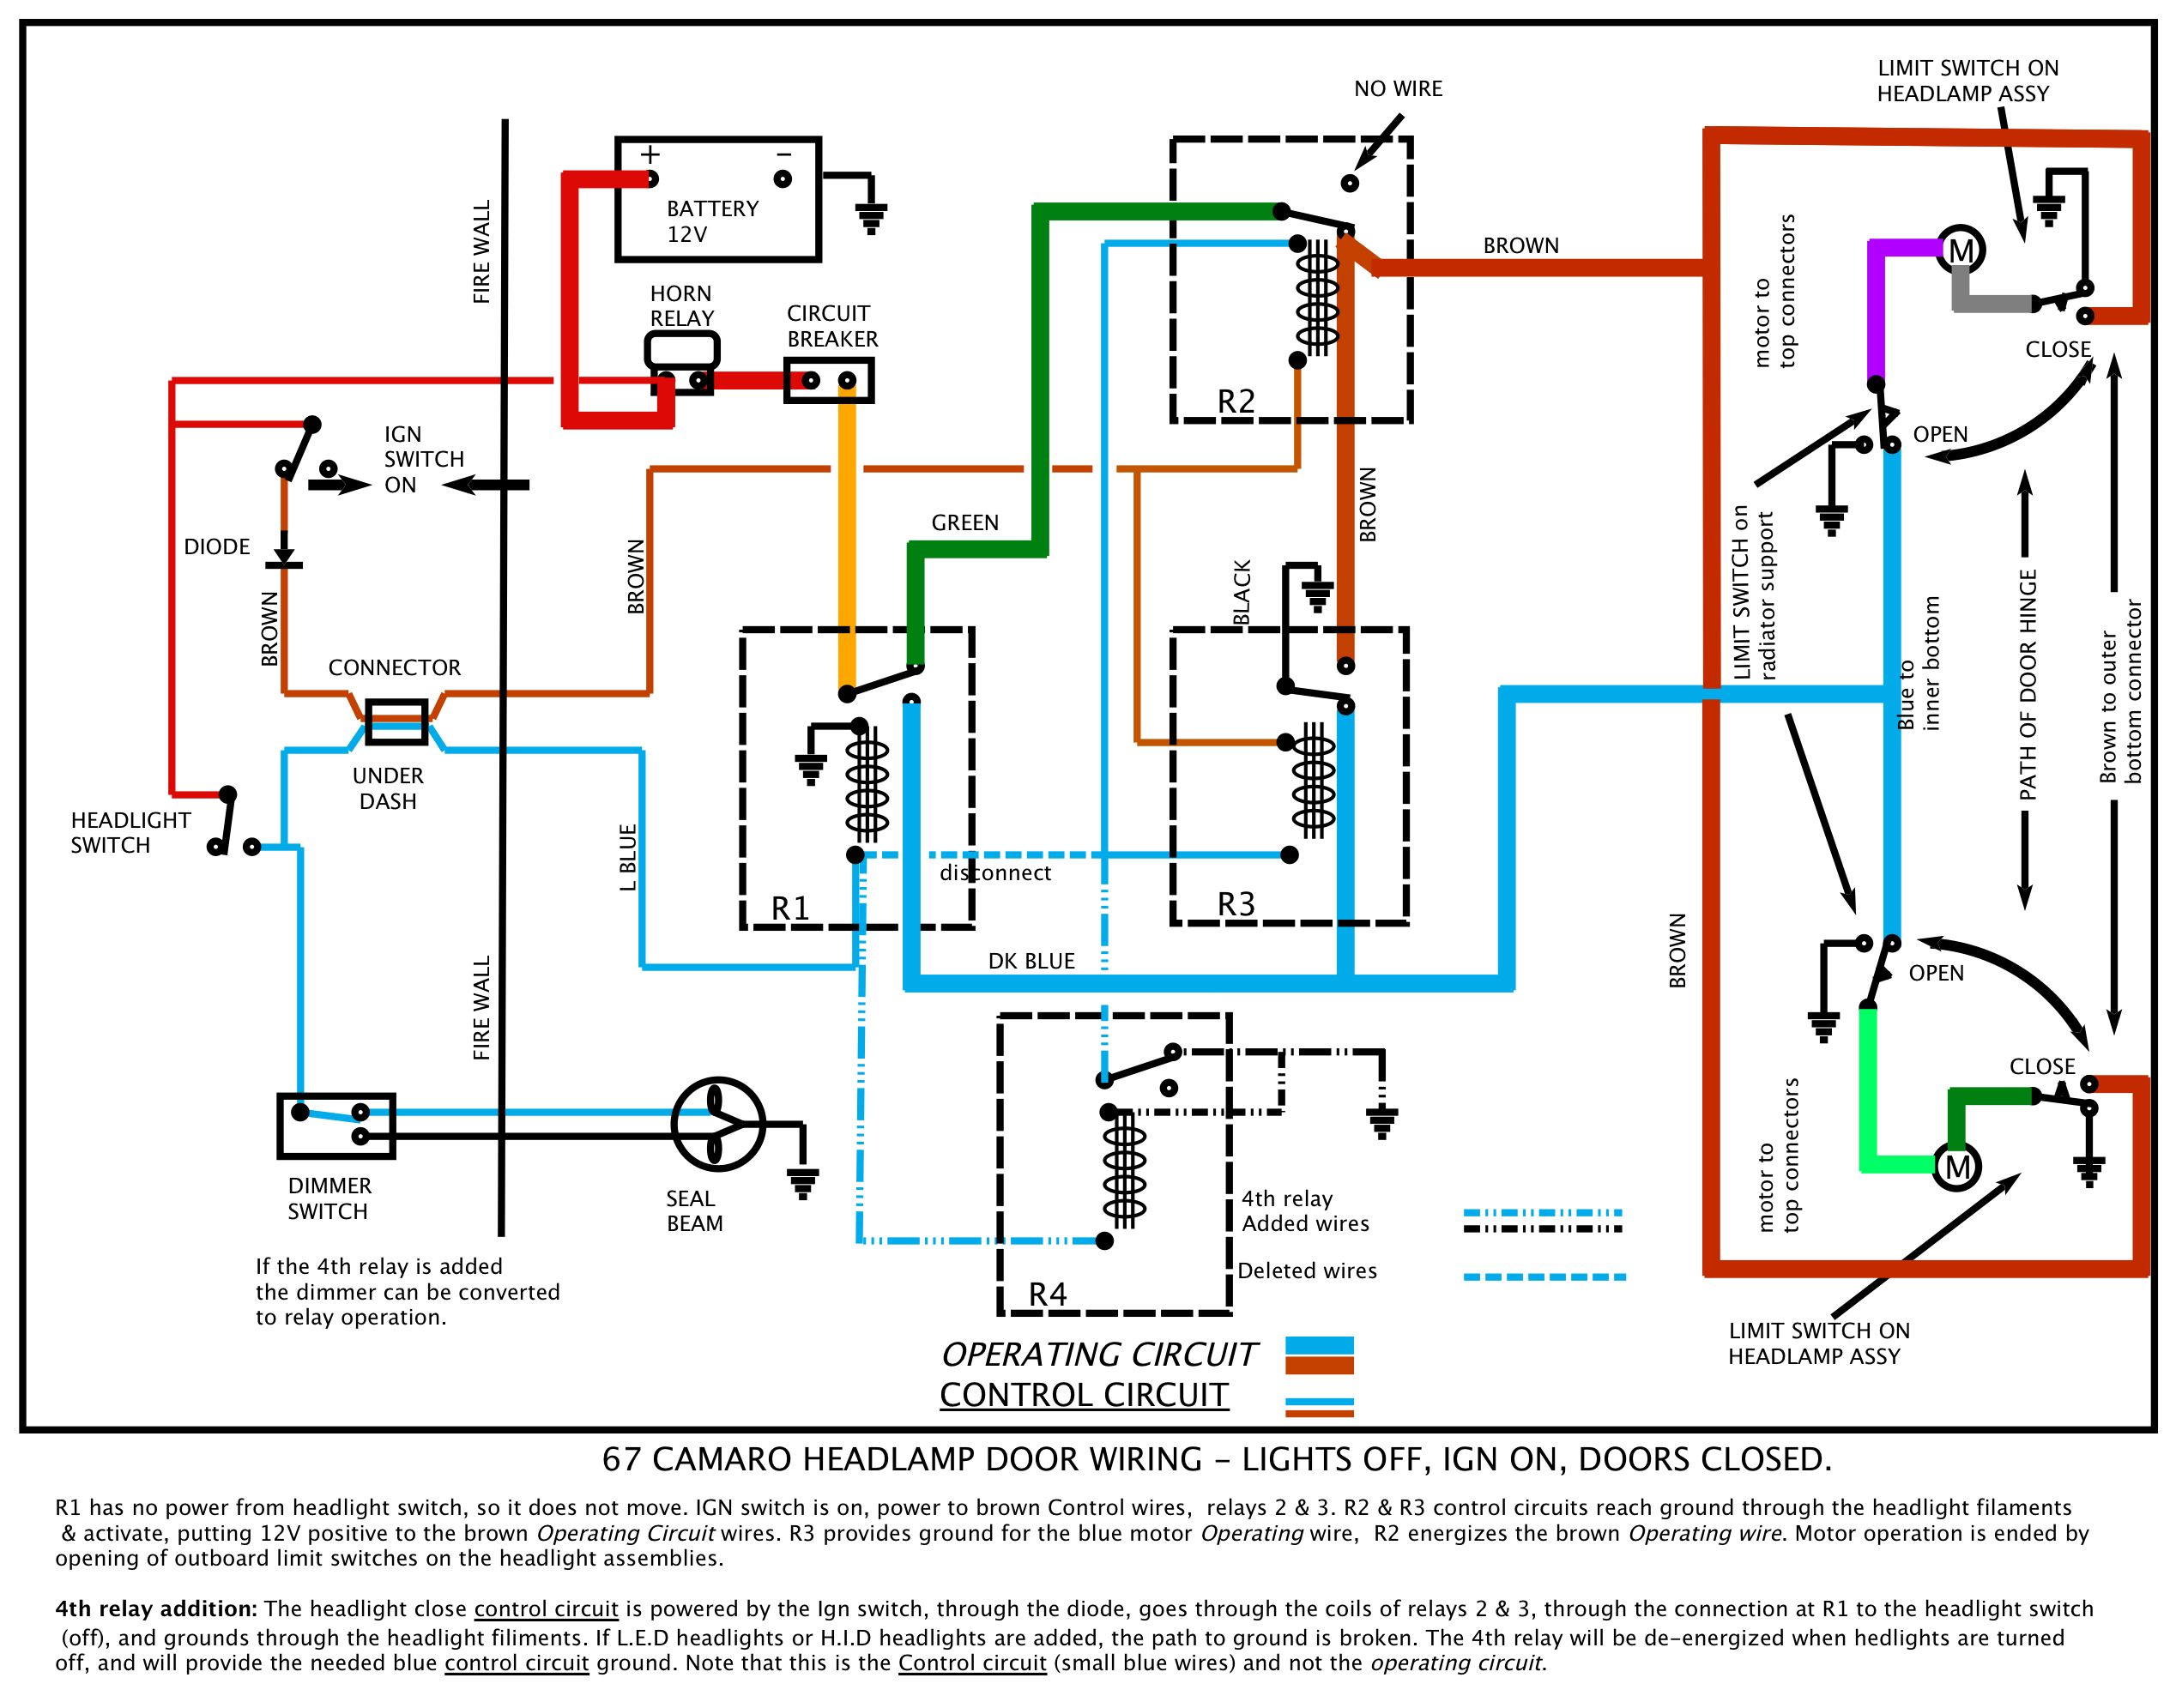 67_RS_Ign_on_4th_relay 1967 camaro wiring diagram pdf 68 camaro engine wiring diagram 1967 camaro headlight switch wiring diagram at webbmarketing.co